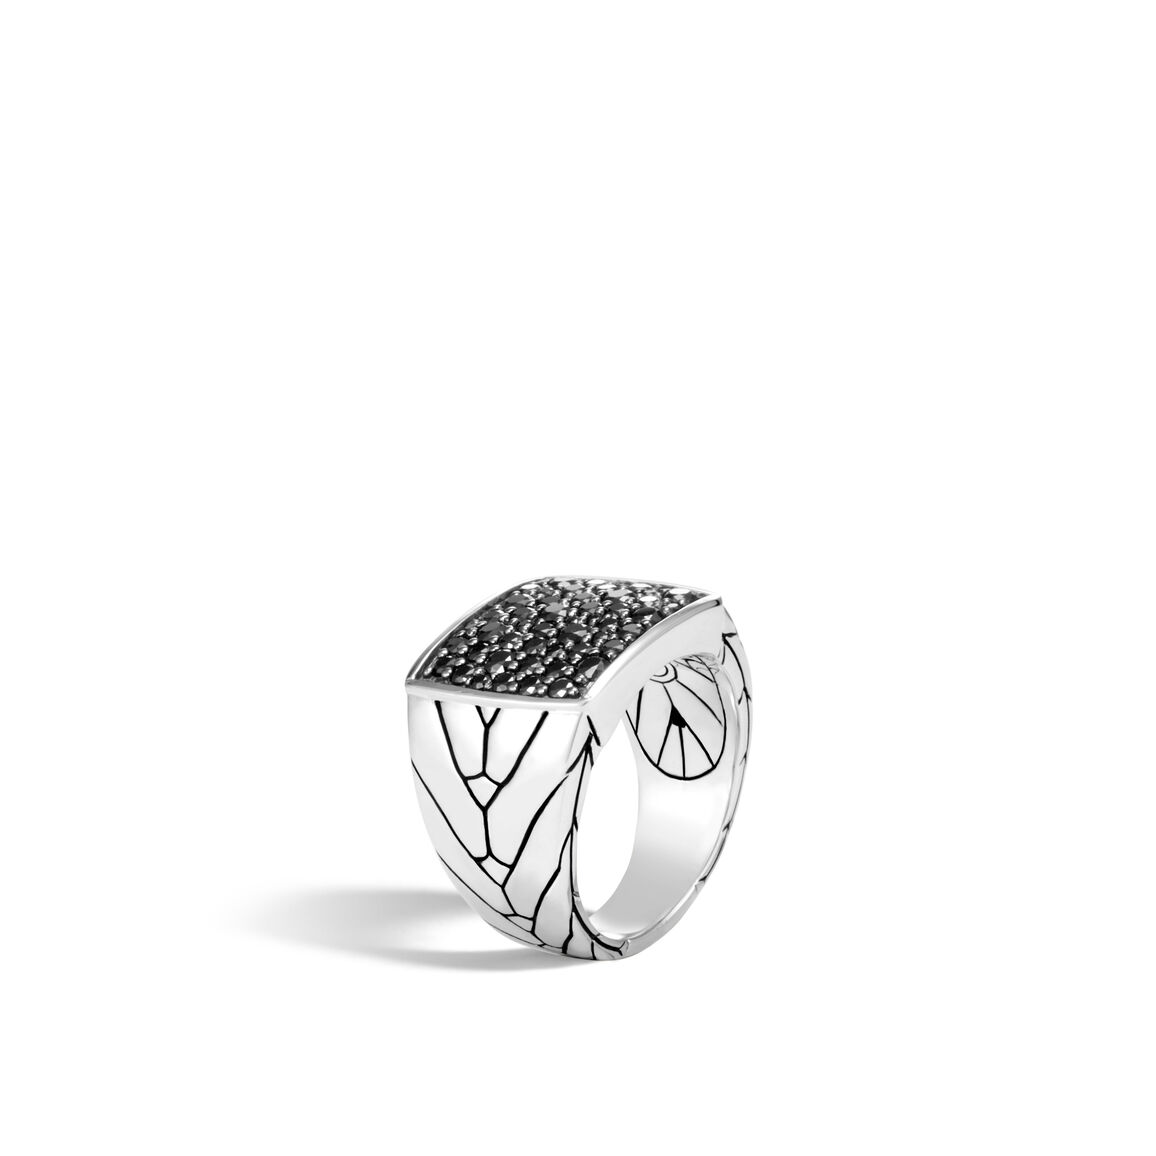 Modern Chain Signet Ring in Silver with Gemstone